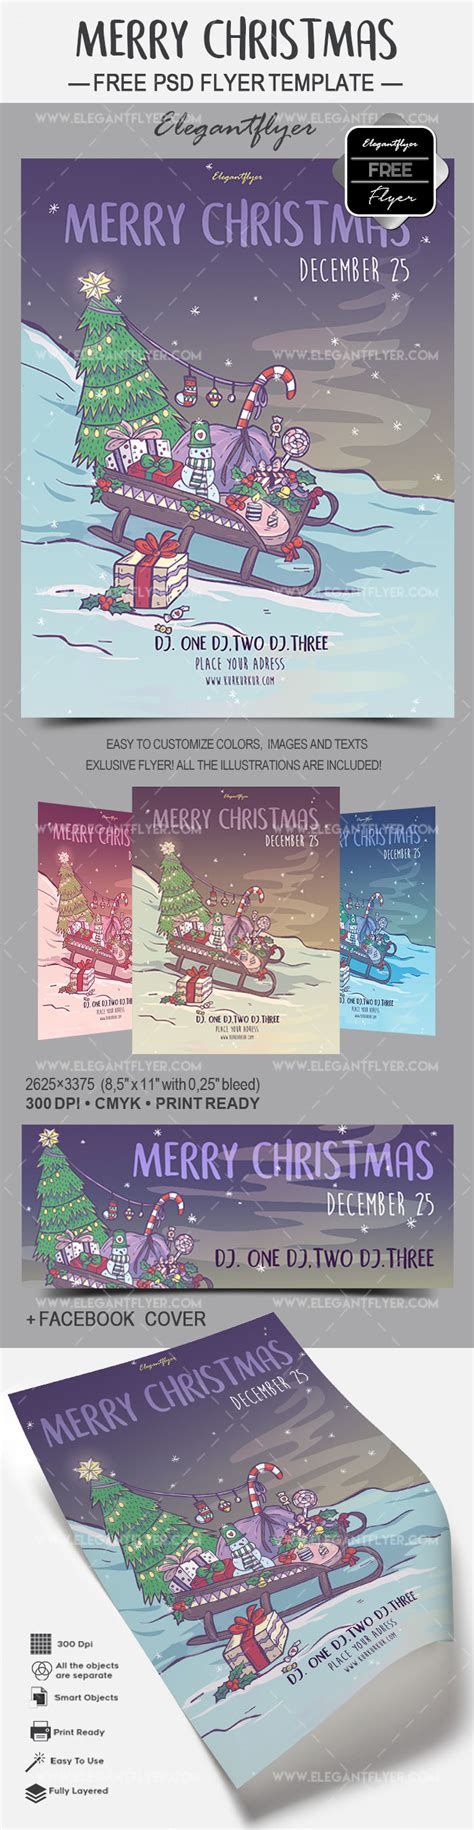 Merry Christmas Free Flyer Psd Template By Elegantflyer Merry Flyer Template Free